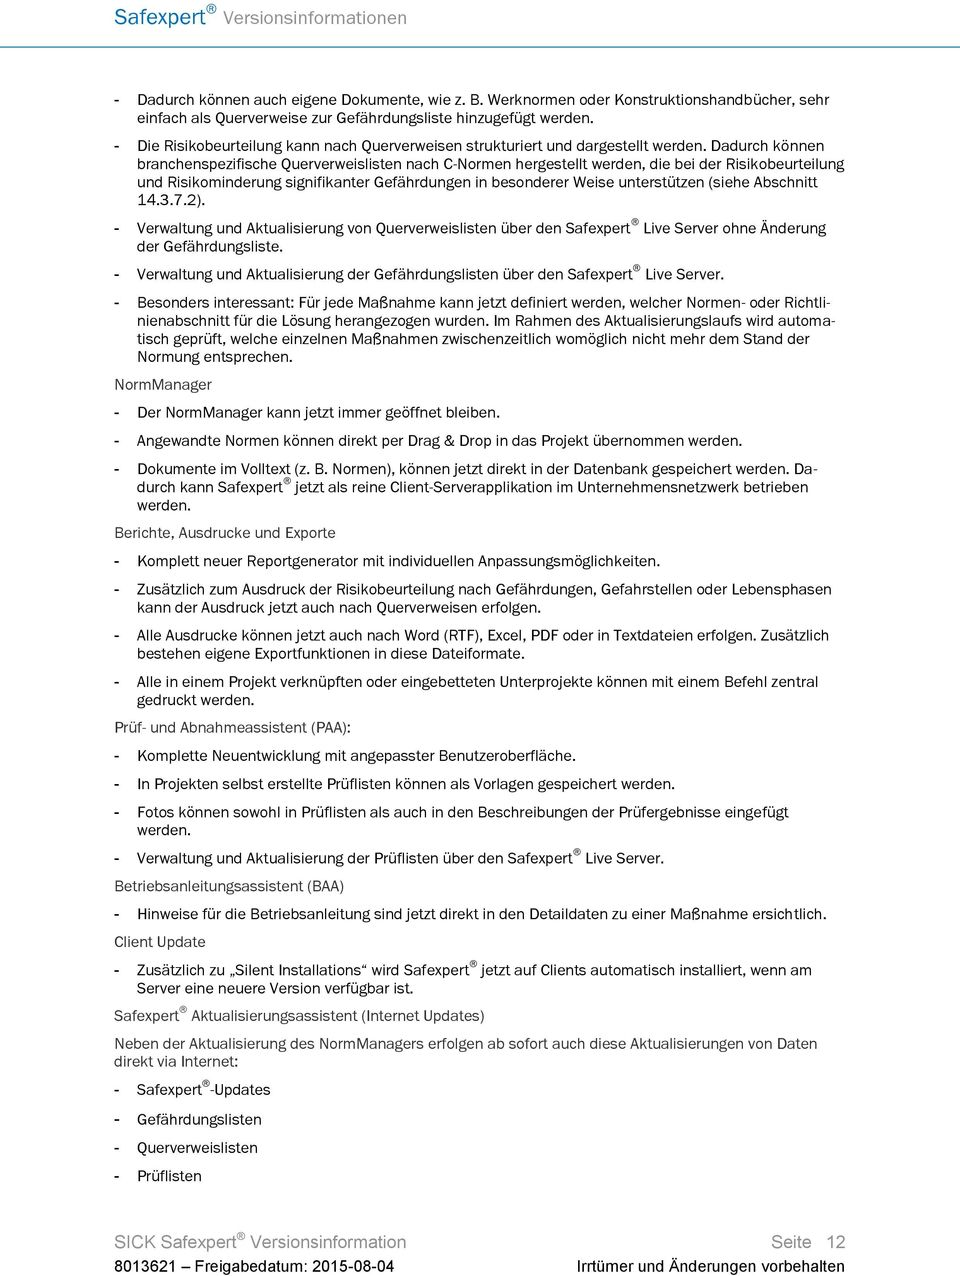 safexpert versionsinformationen pdf